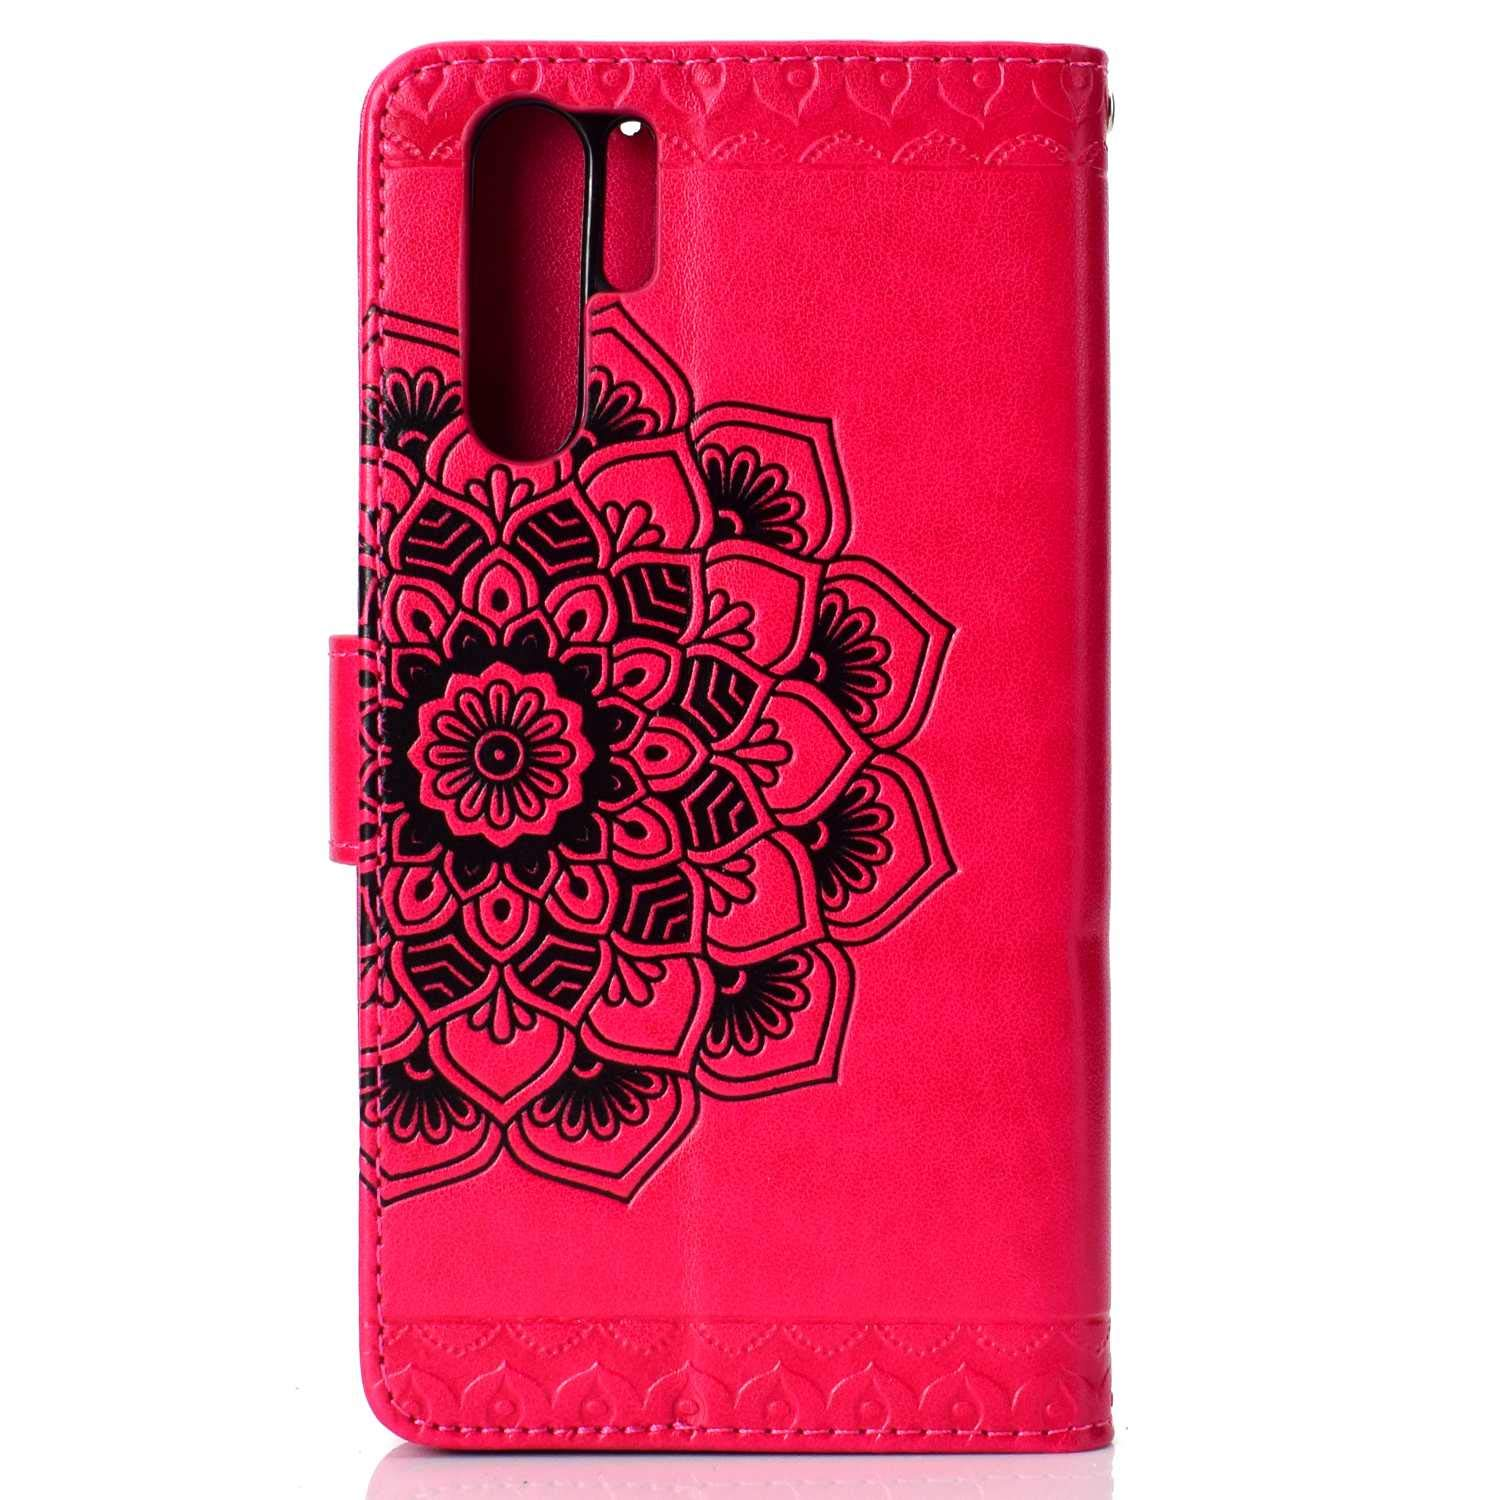 Blue Leather Case Magnetic Stand Bumper Case with Card Holders and Hand Wrist CUSKING Wallet Case for HUAWEI P30 Pro